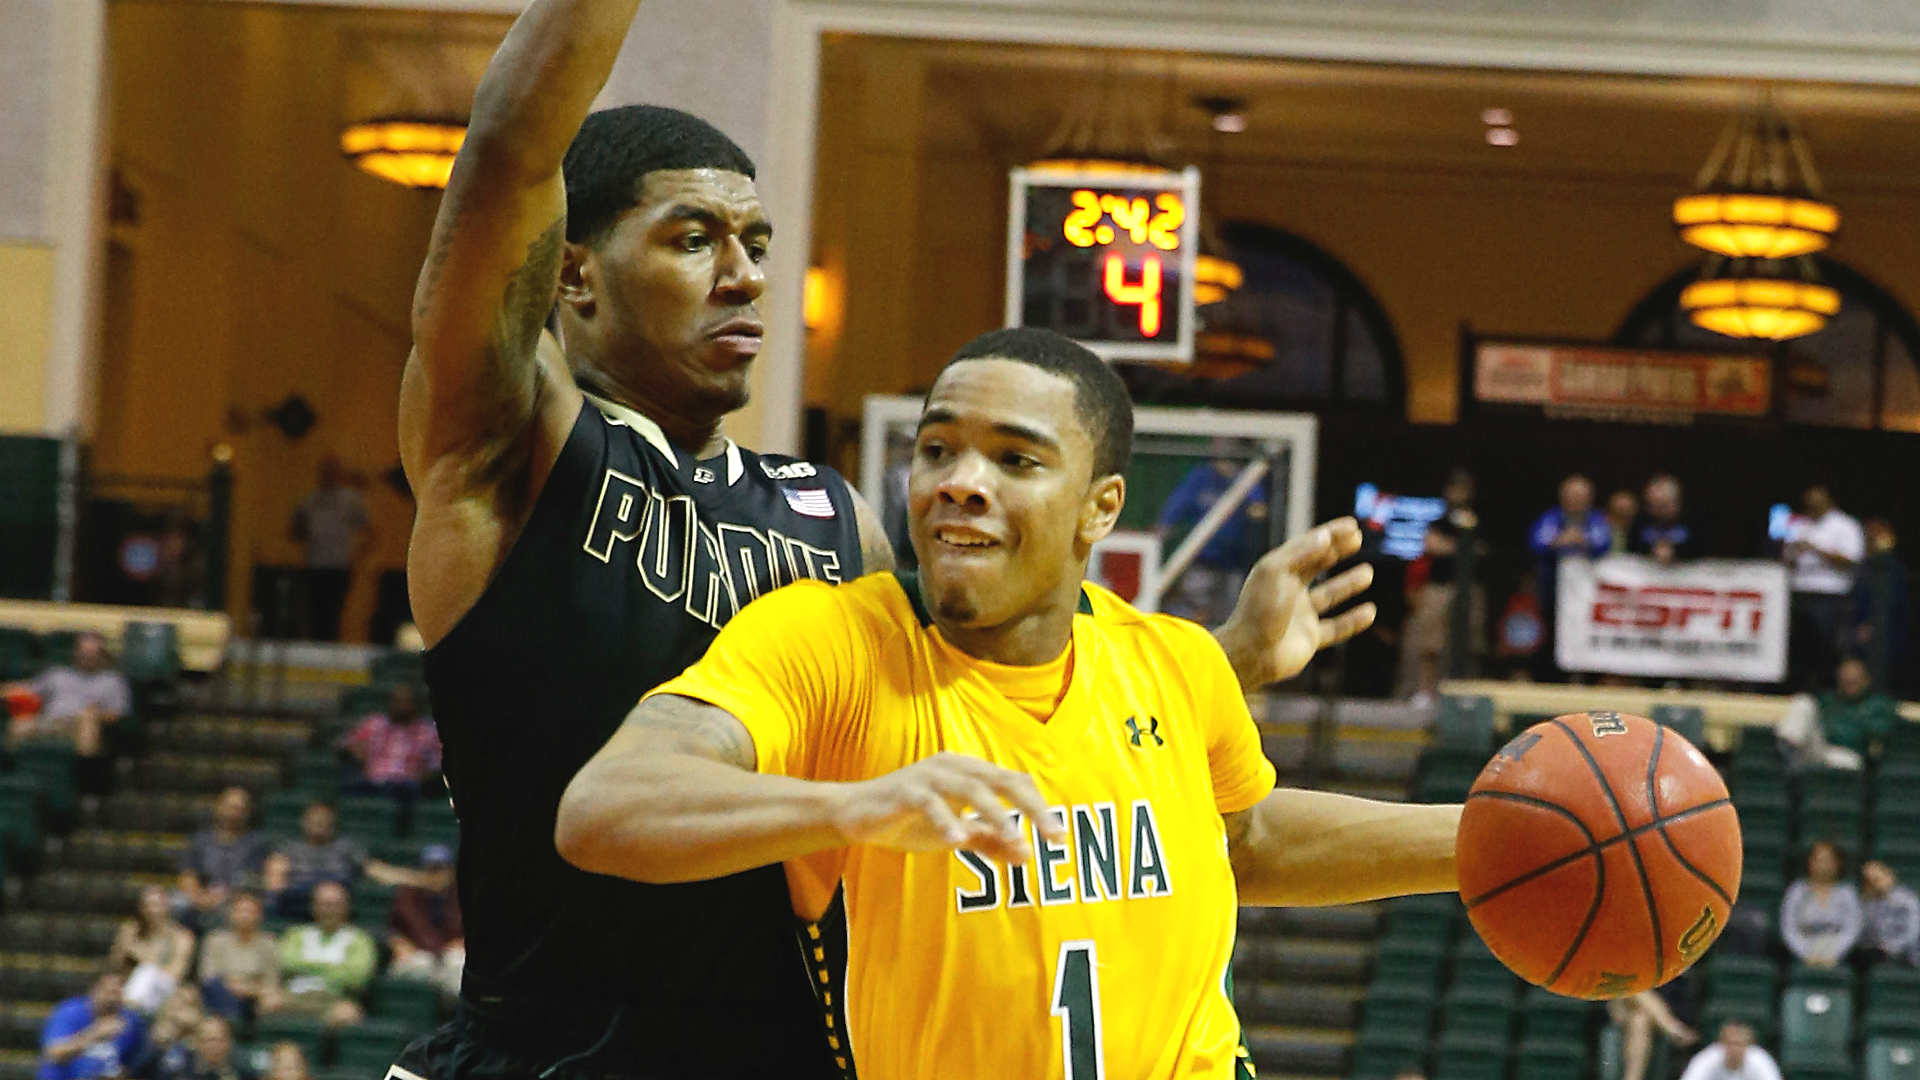 Siena's Marquis Wright